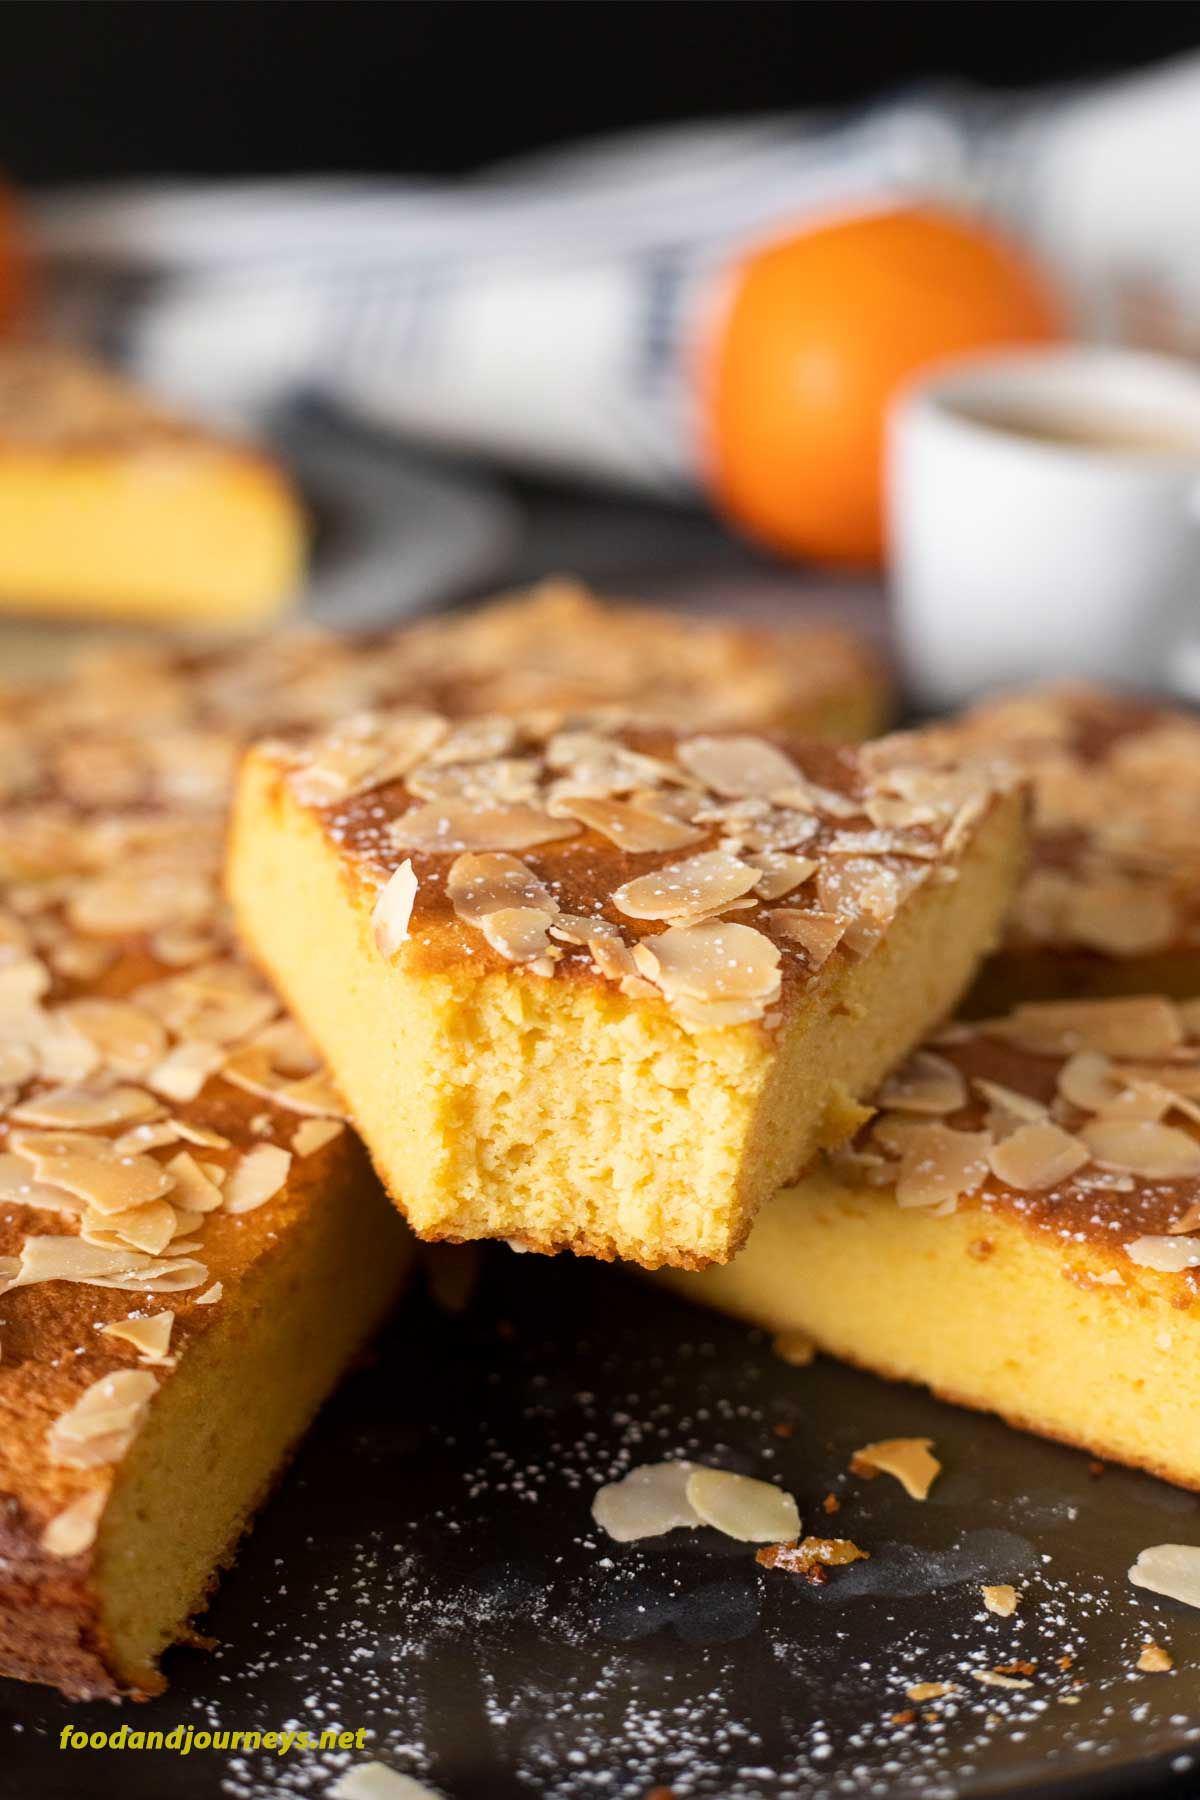 A slice of French Orange and Almond Cake is placed on top of the rest of the cake. The texture of the cake is highlighted, as well as the undeniable orange color of the inside of this flourless cake.